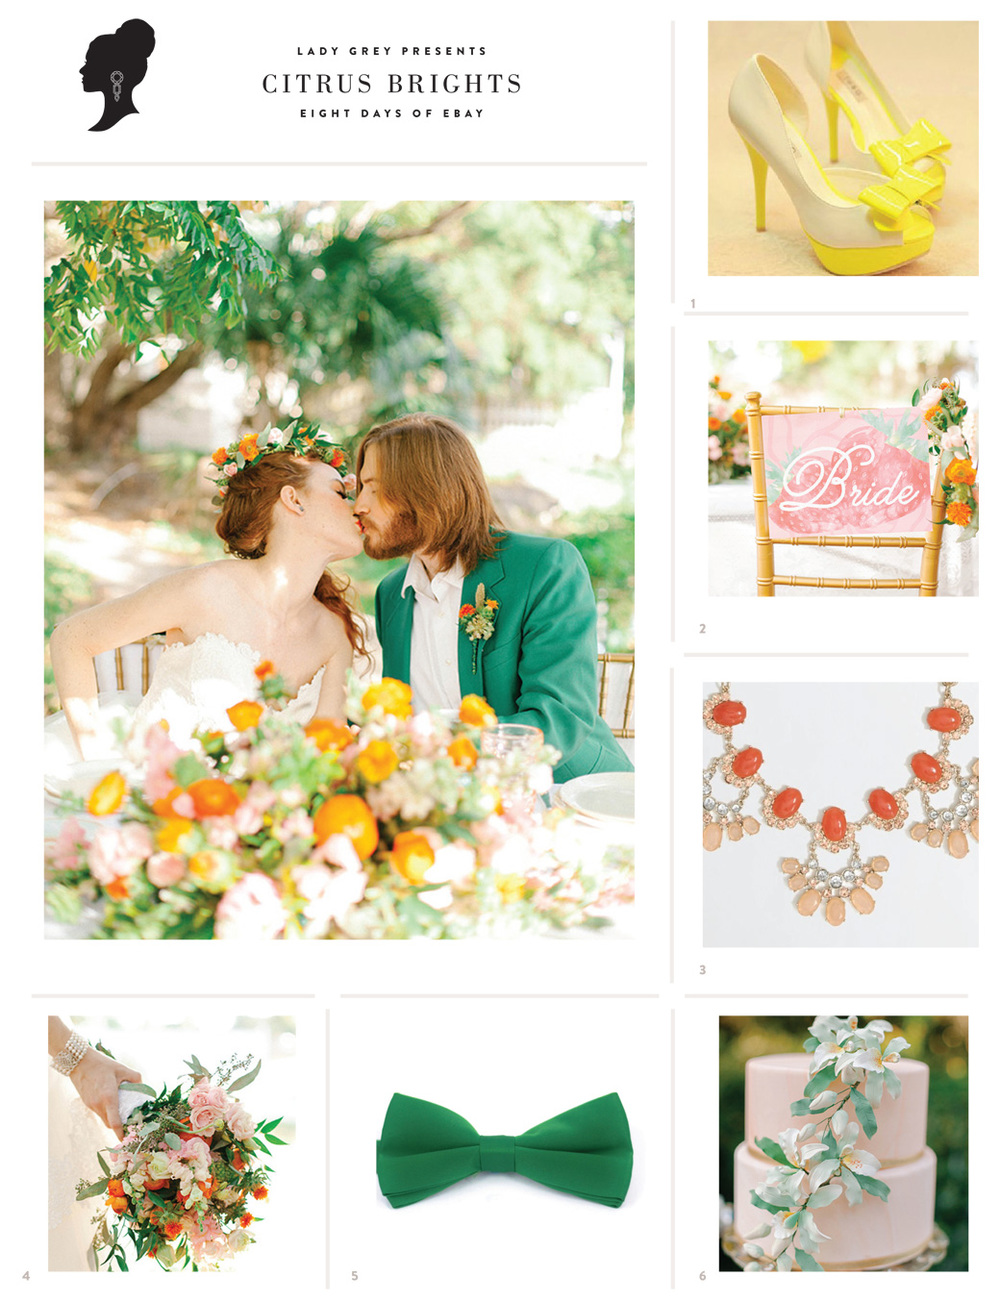 Florida Inspired Wedding Details Featuring Oh Hello Events, Tampa, Florida Wedding Planner